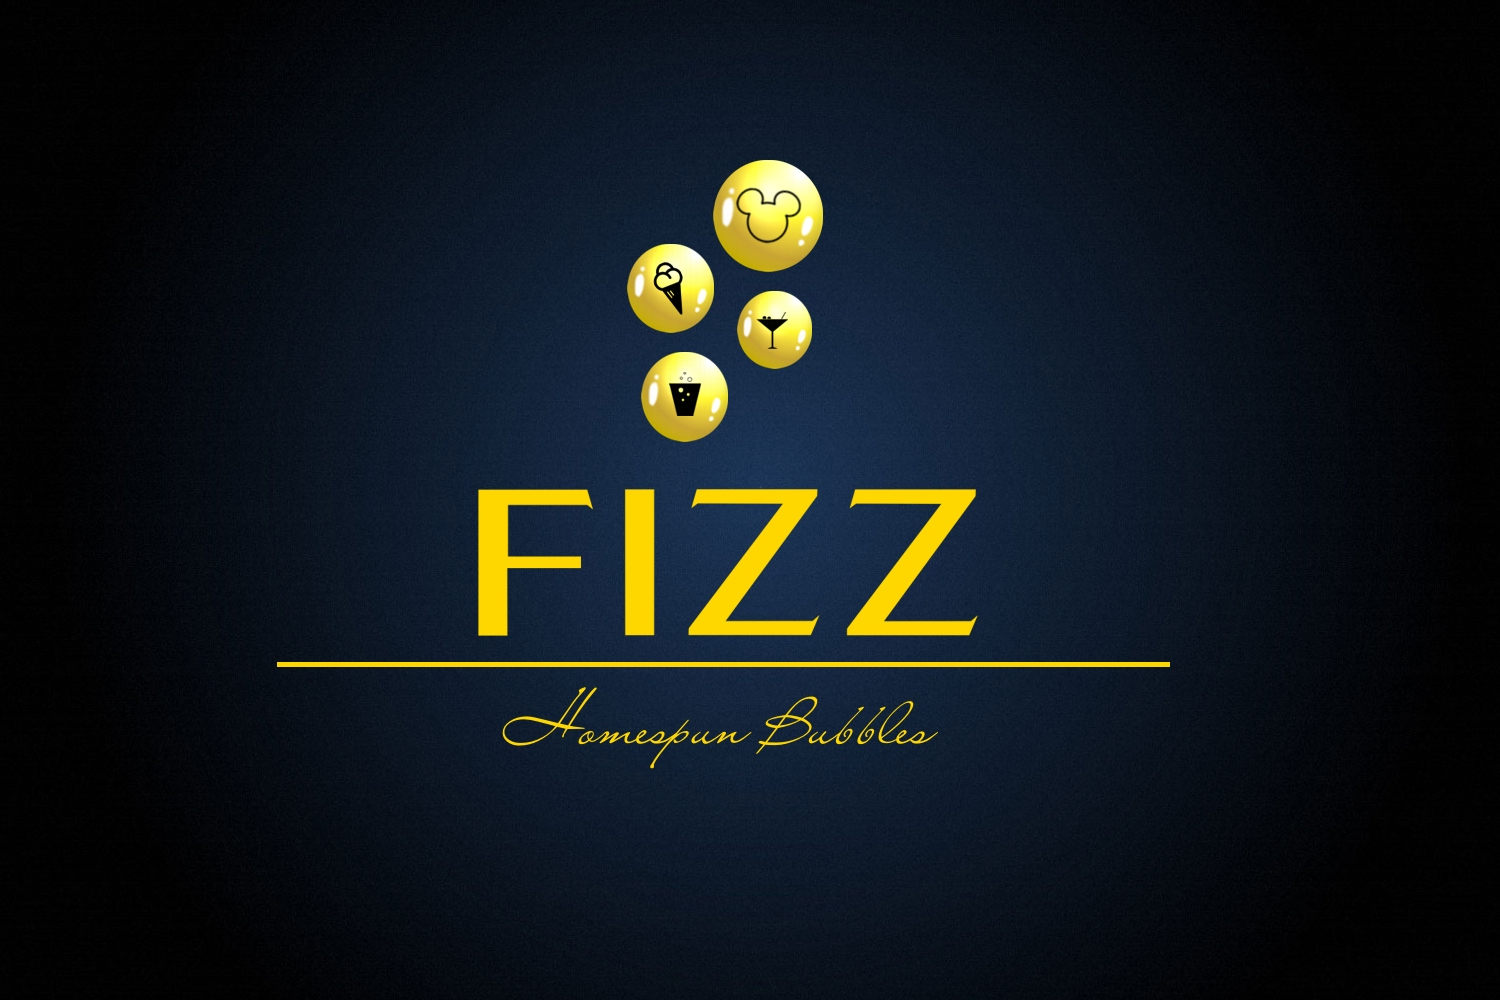 Logo Design by Q_Division_Designs - Entry No. 75 in the Logo Design Contest Unique Logo Design Wanted for Fizz.